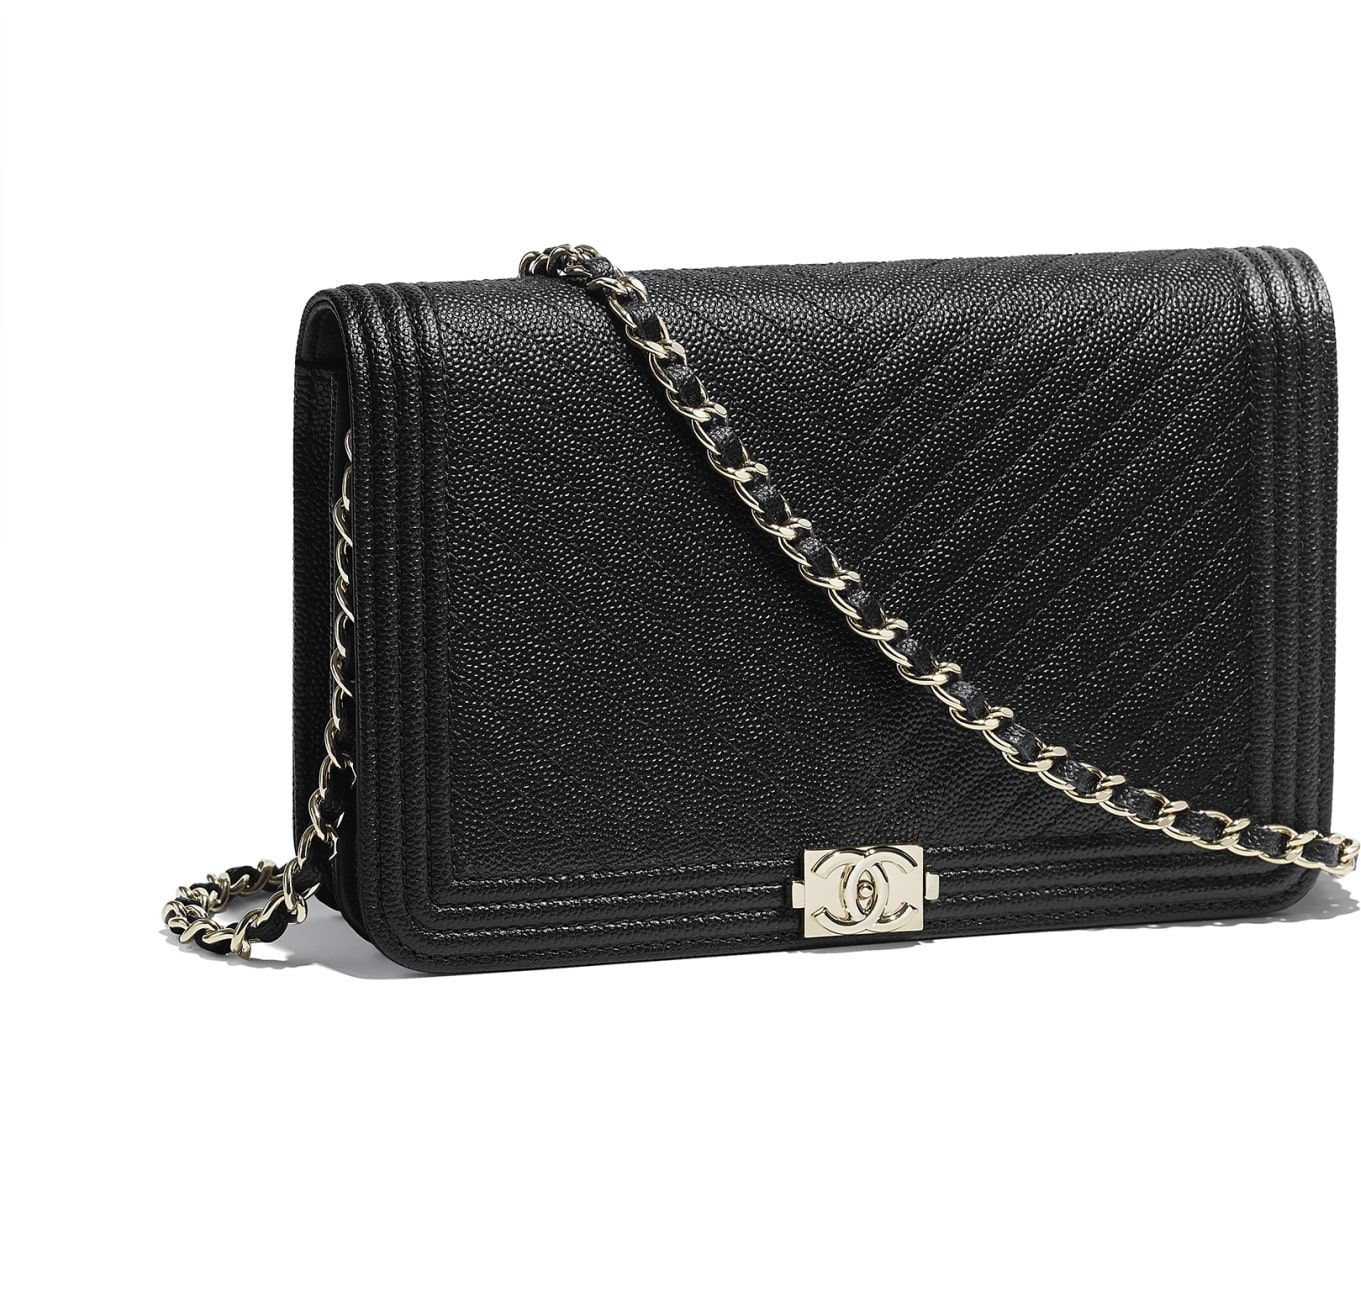 6423f07a81 BOY CHANEL Wallet on Chain, grained goatskin & gold-tone metal ...